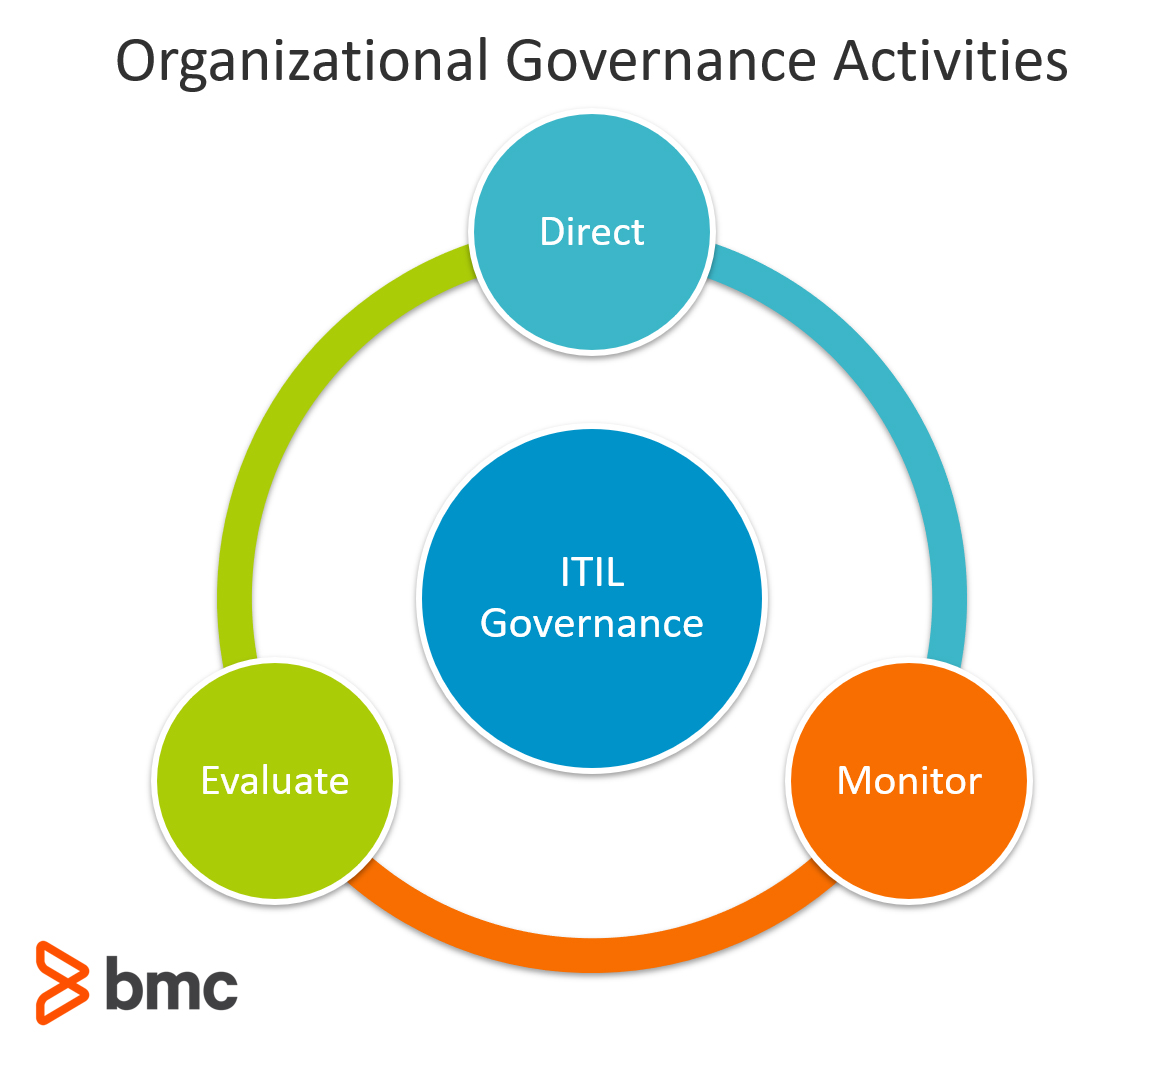 Organizational Governance Activities